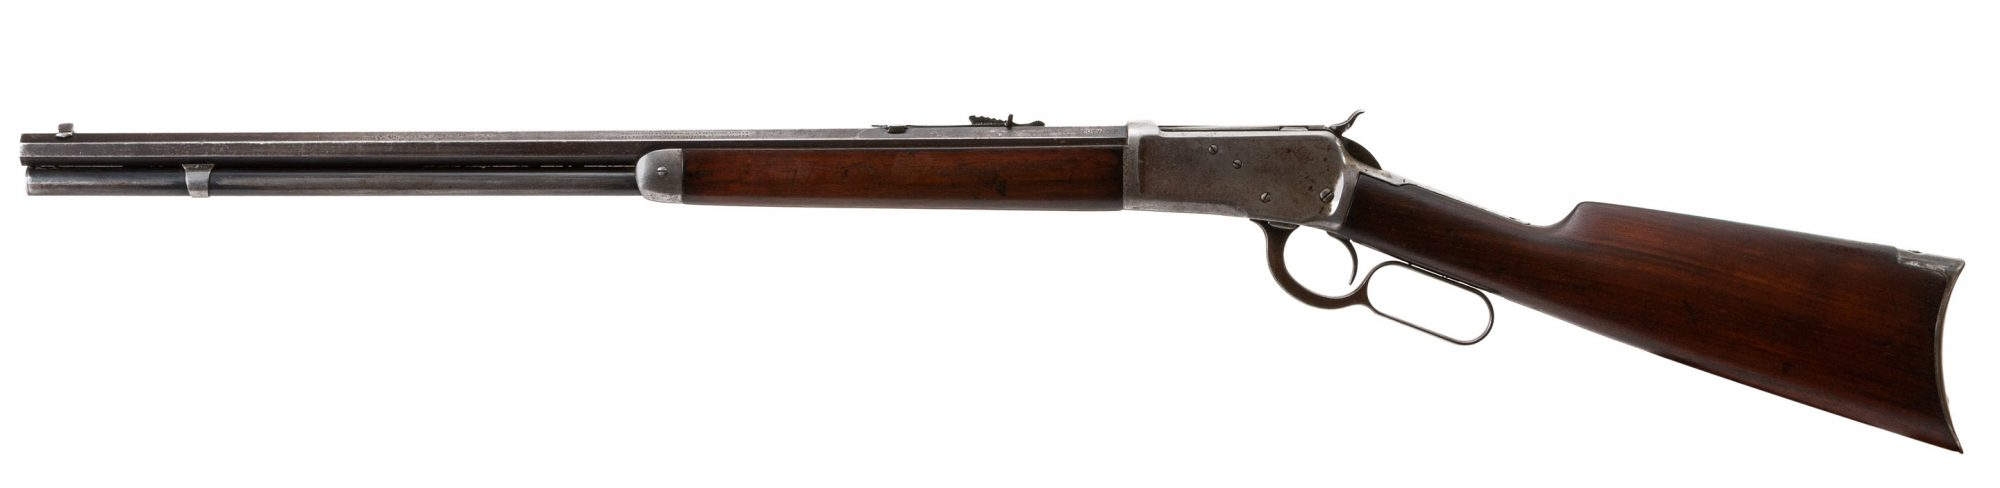 Photo of a pre-owned Winchester Model 1892 from 1917, for sale by Turnbull Restoration of Bloomfield, NY